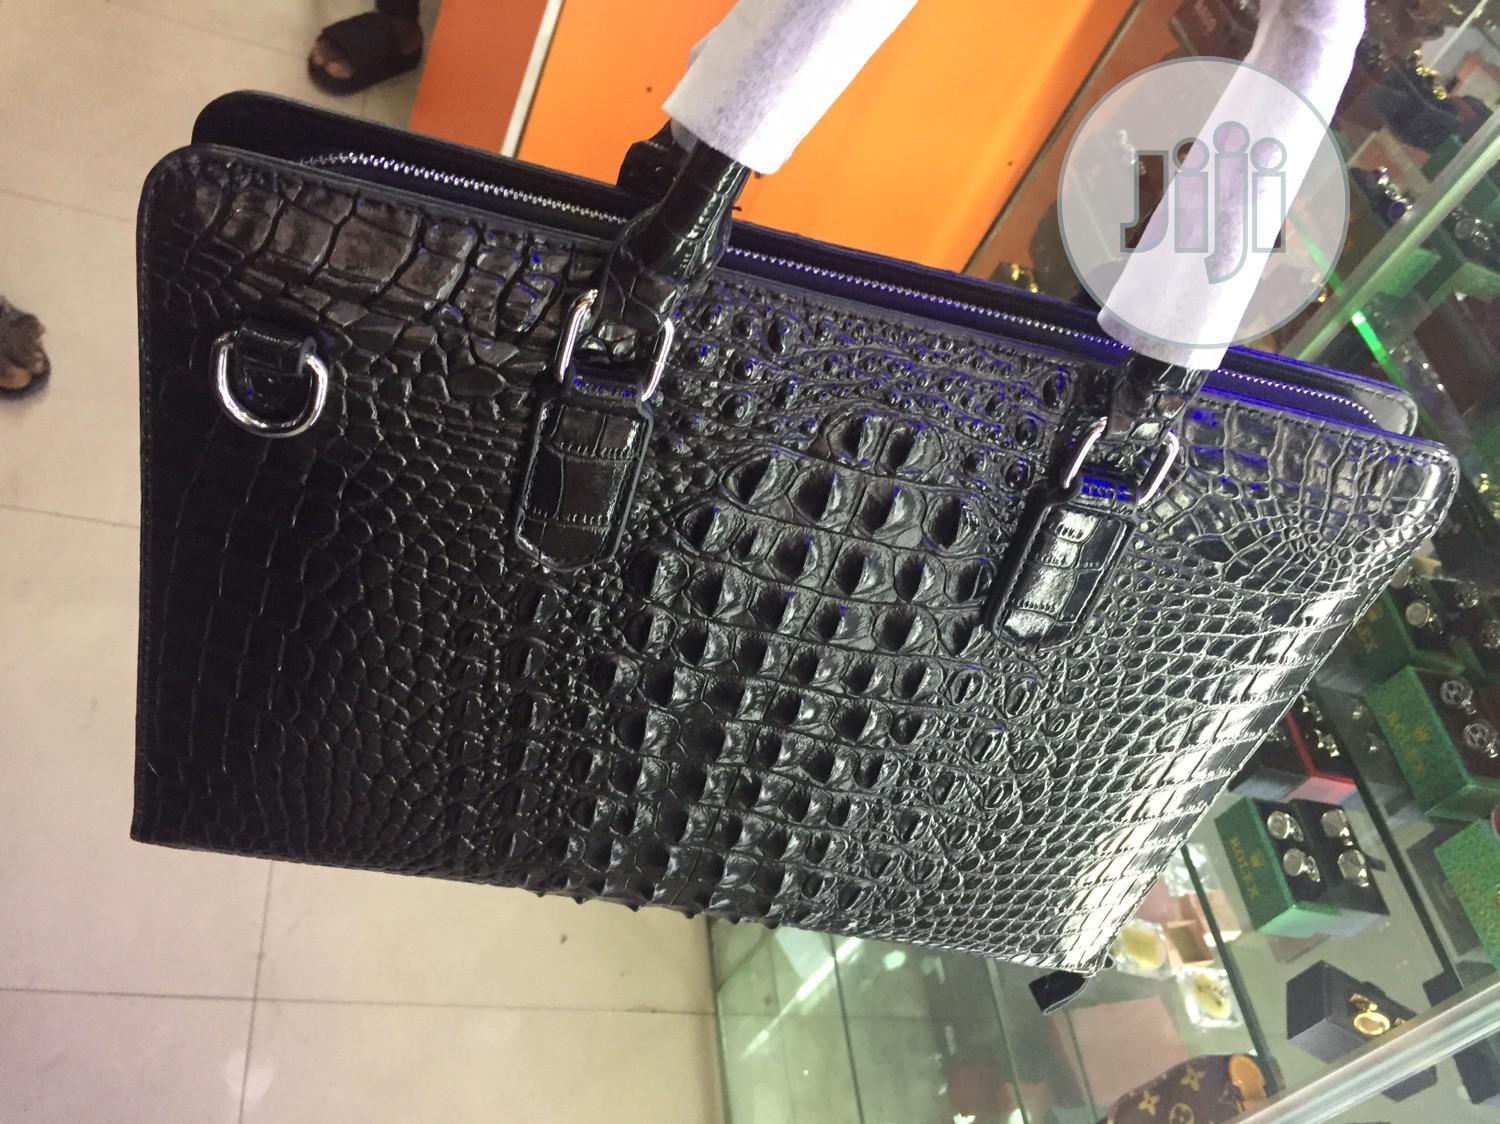 Skin Leather Laptop/Official Bag Available as Seen Order Yours Now